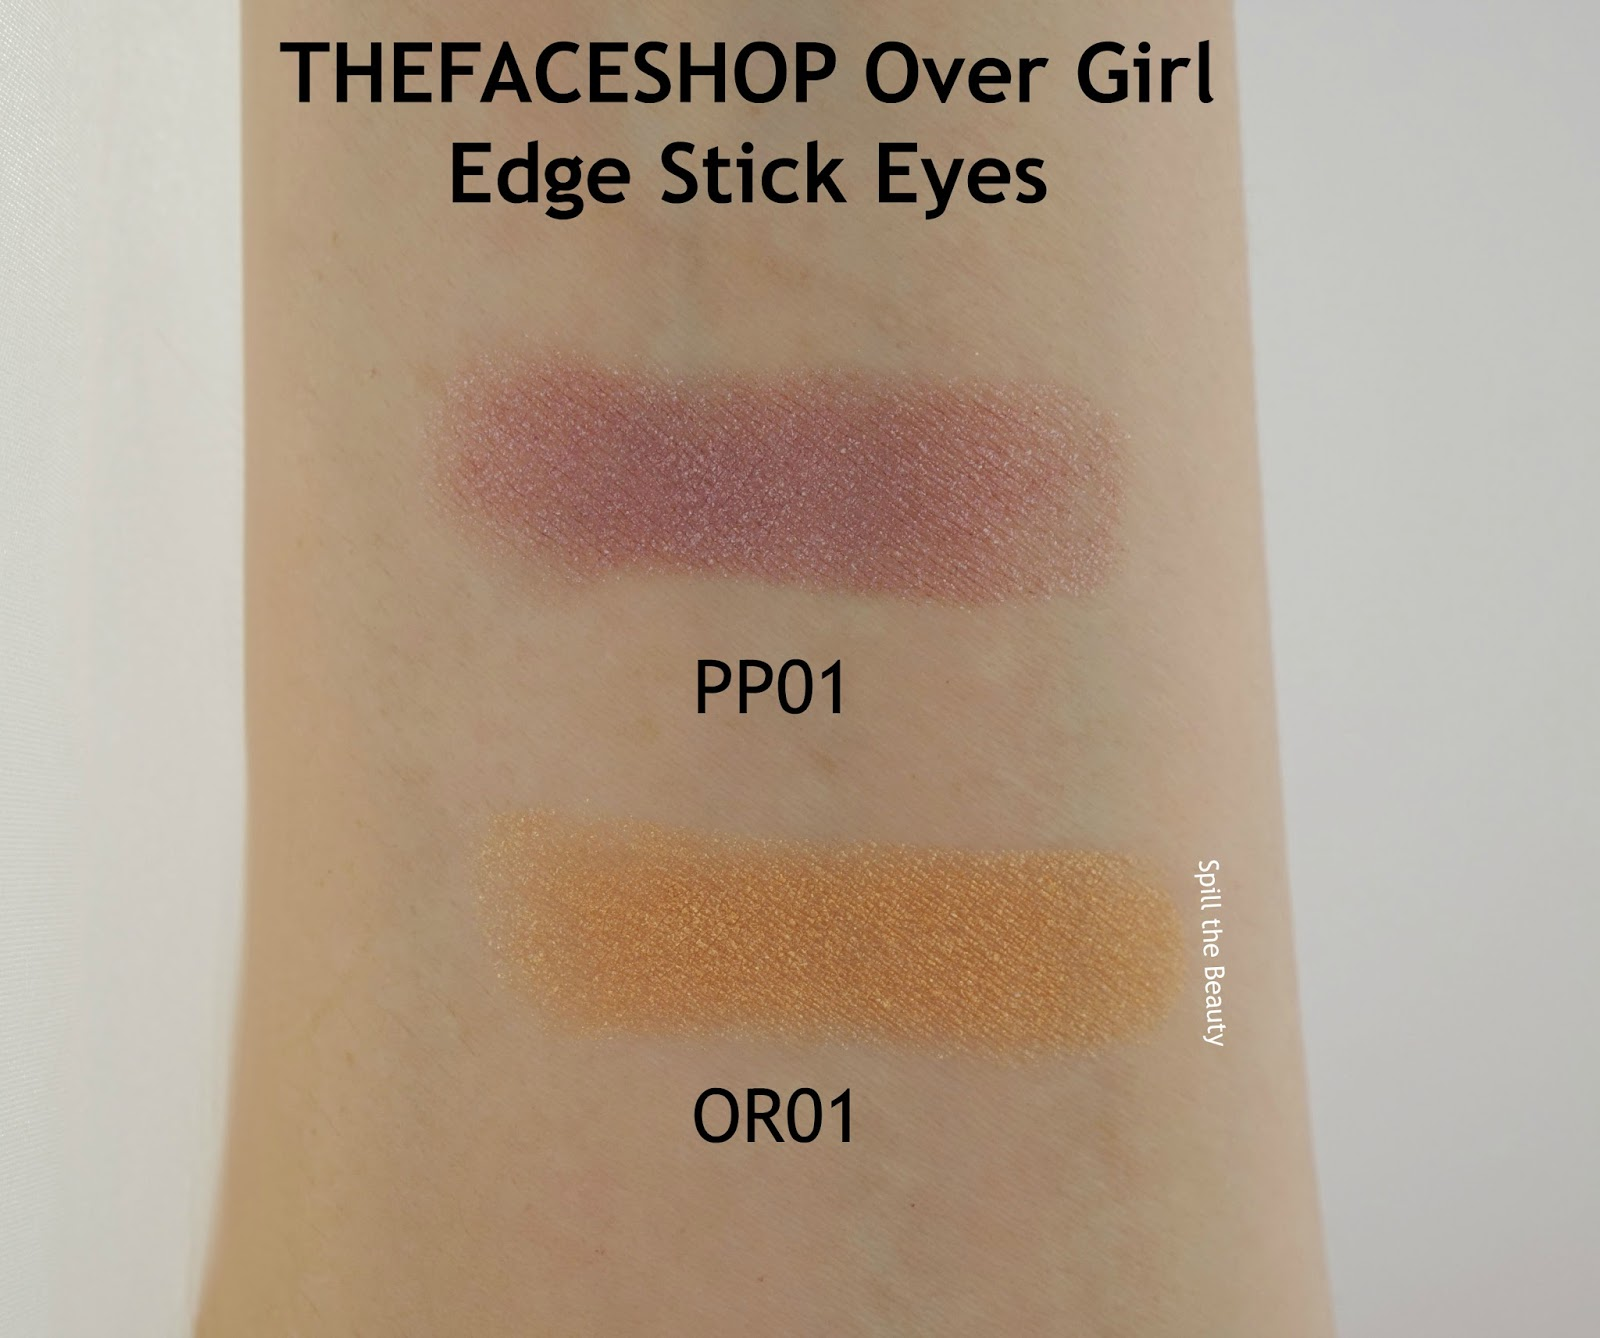 THEFACESHOP over girl edge stick eyes pp01 or01 arm swatch